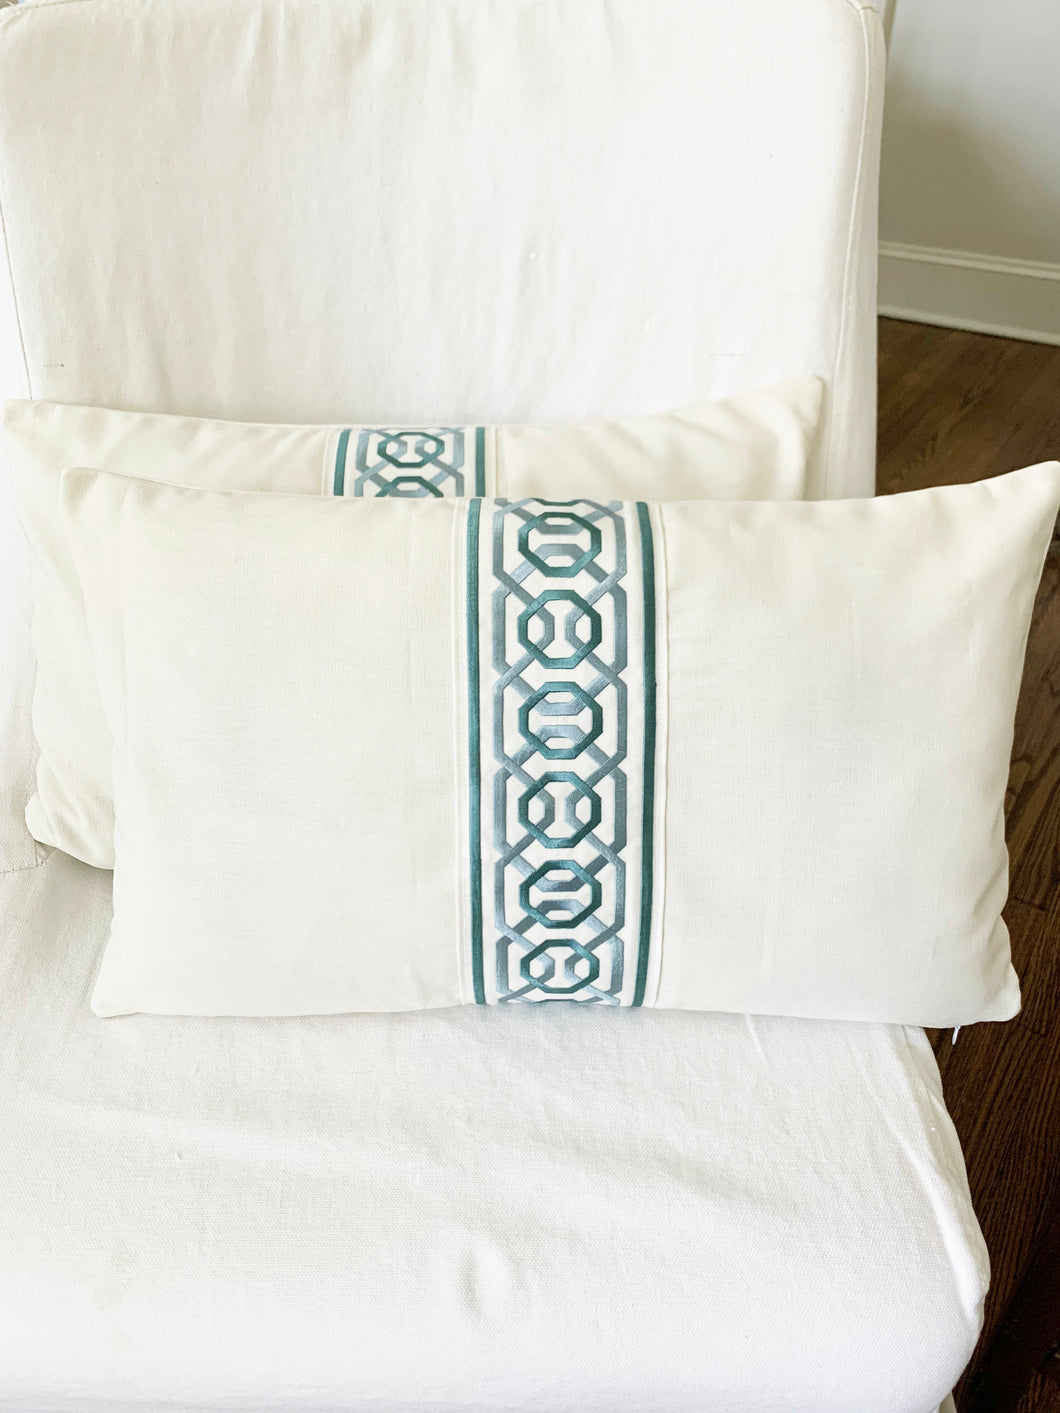 QUICK SHIP Greek Key trimmed pillow 12x20 lumbar Samuel and Sons wide trim pillow ODORI Mineral embroidered trim offwhite and aqua blue trim